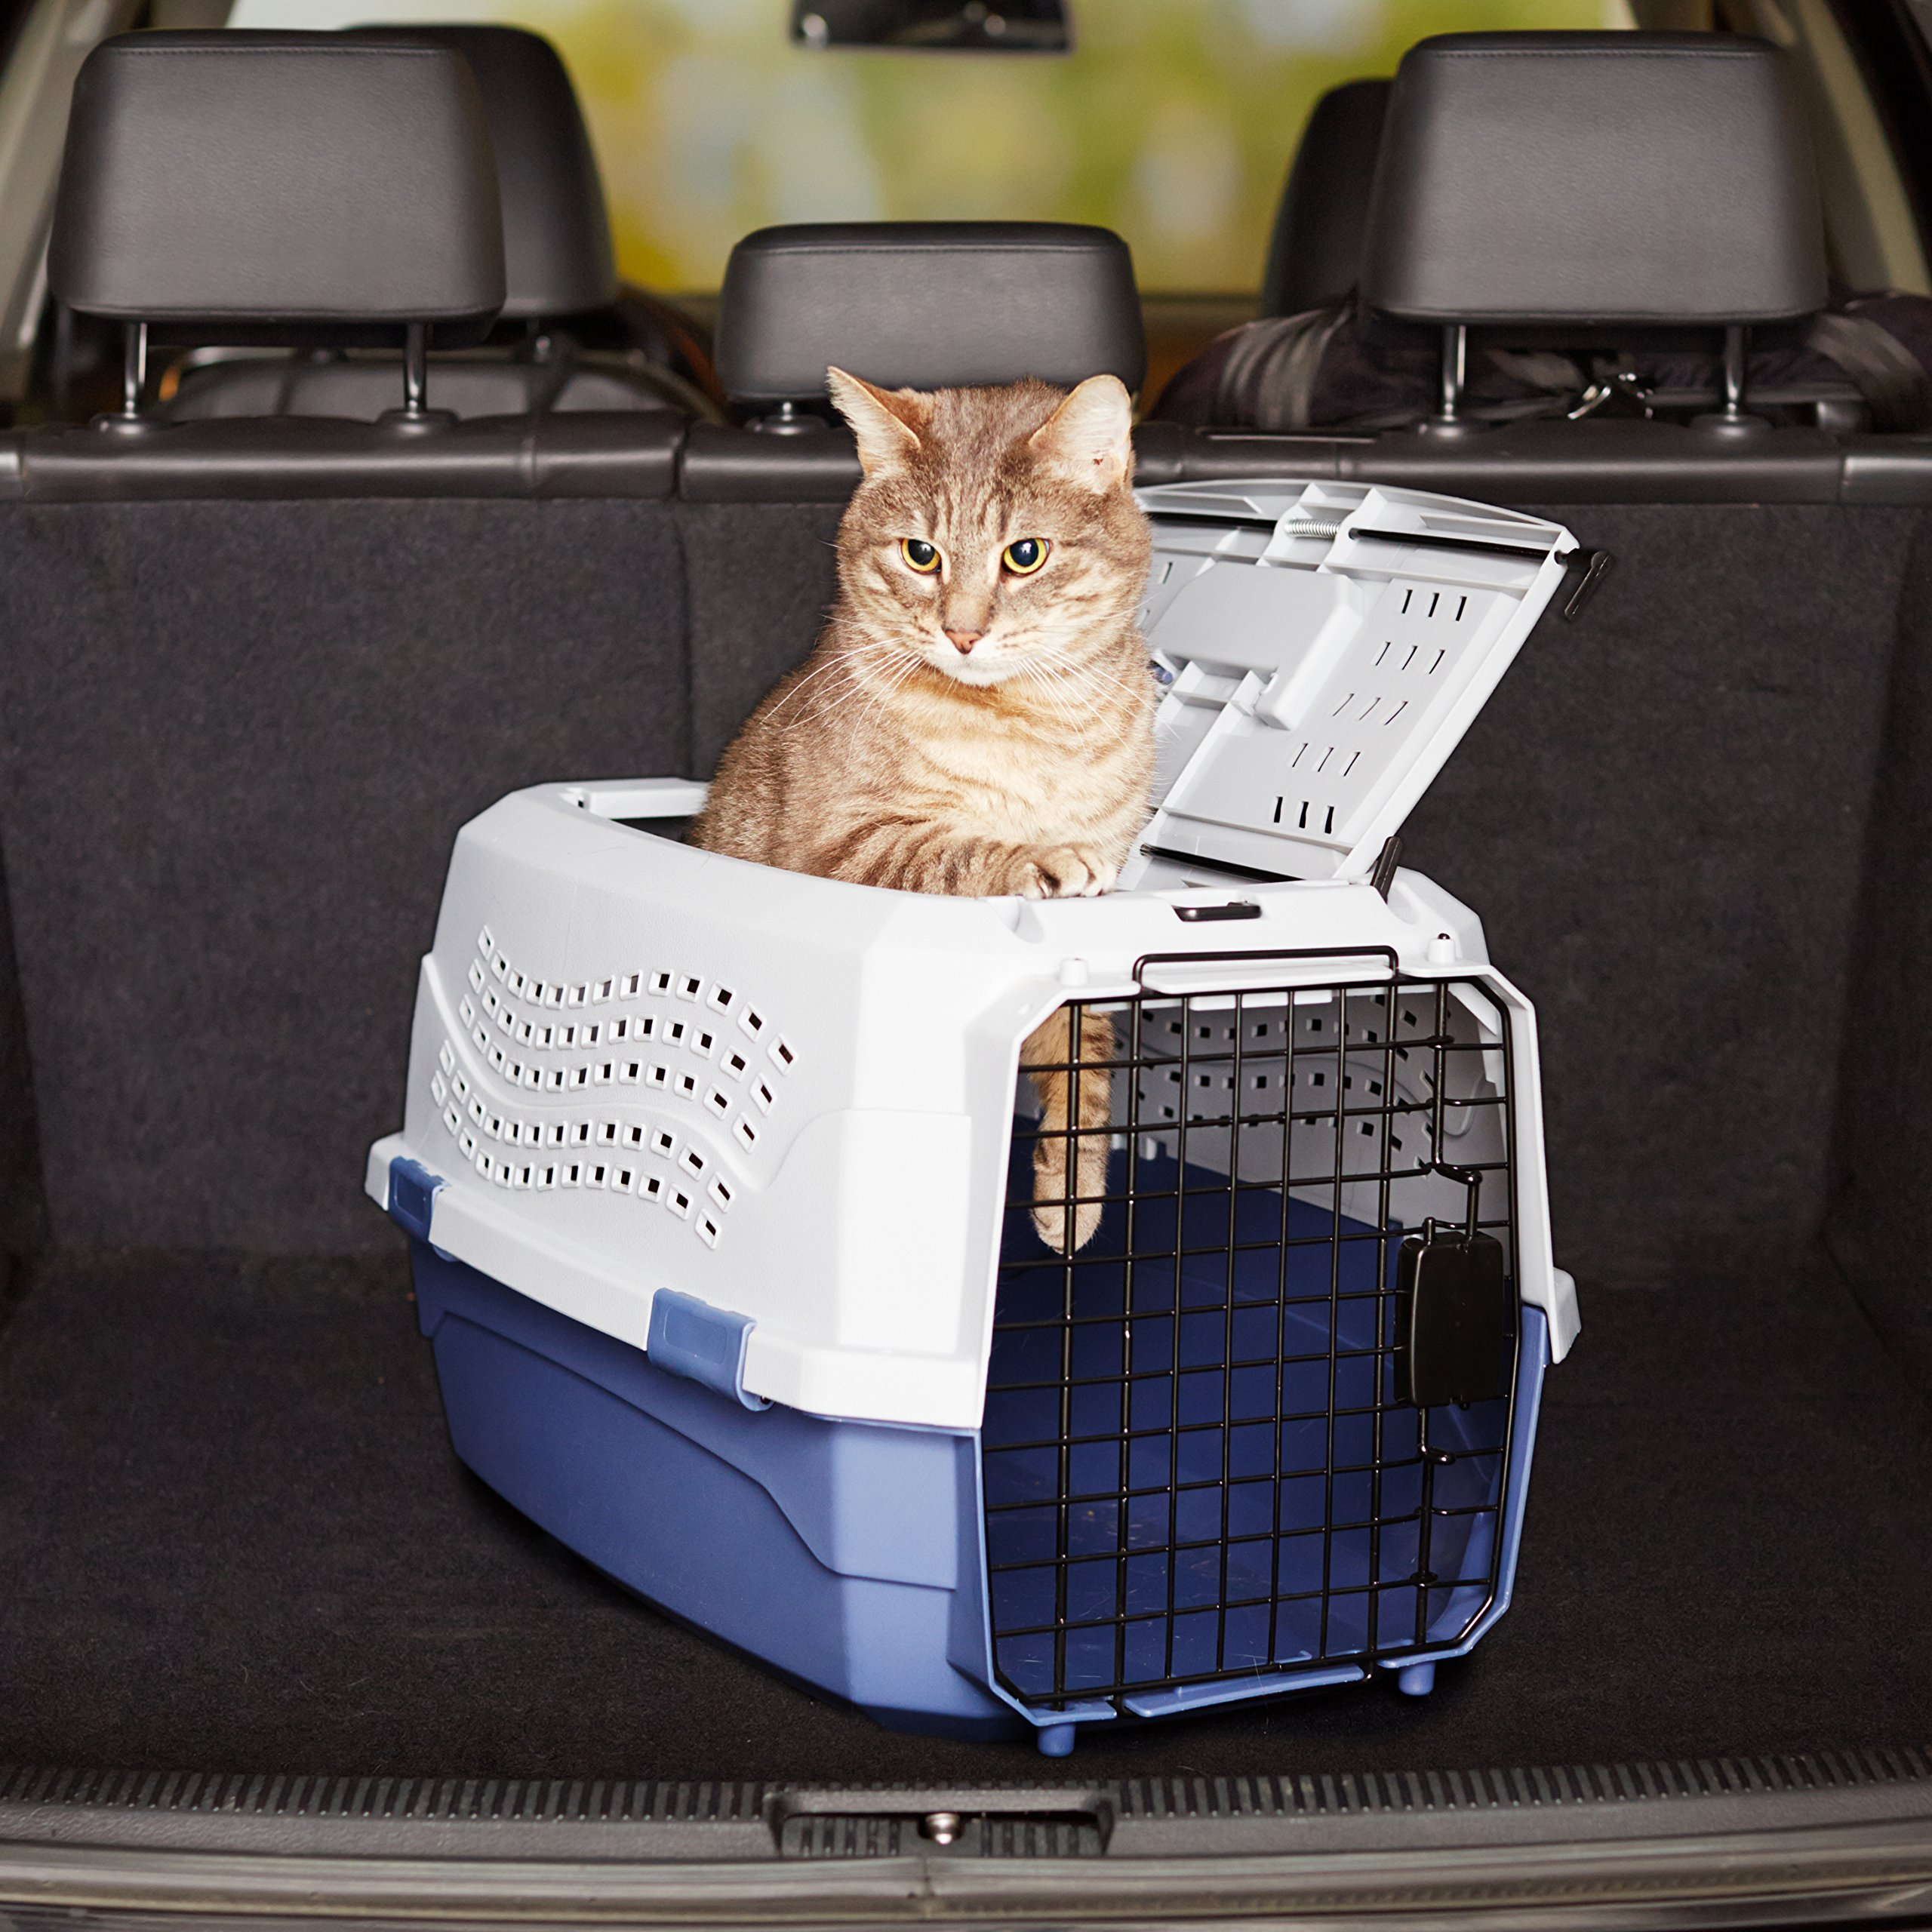 Amazon Basics Two-Door Top-Load Hard-Sided Pet Travel Carrier